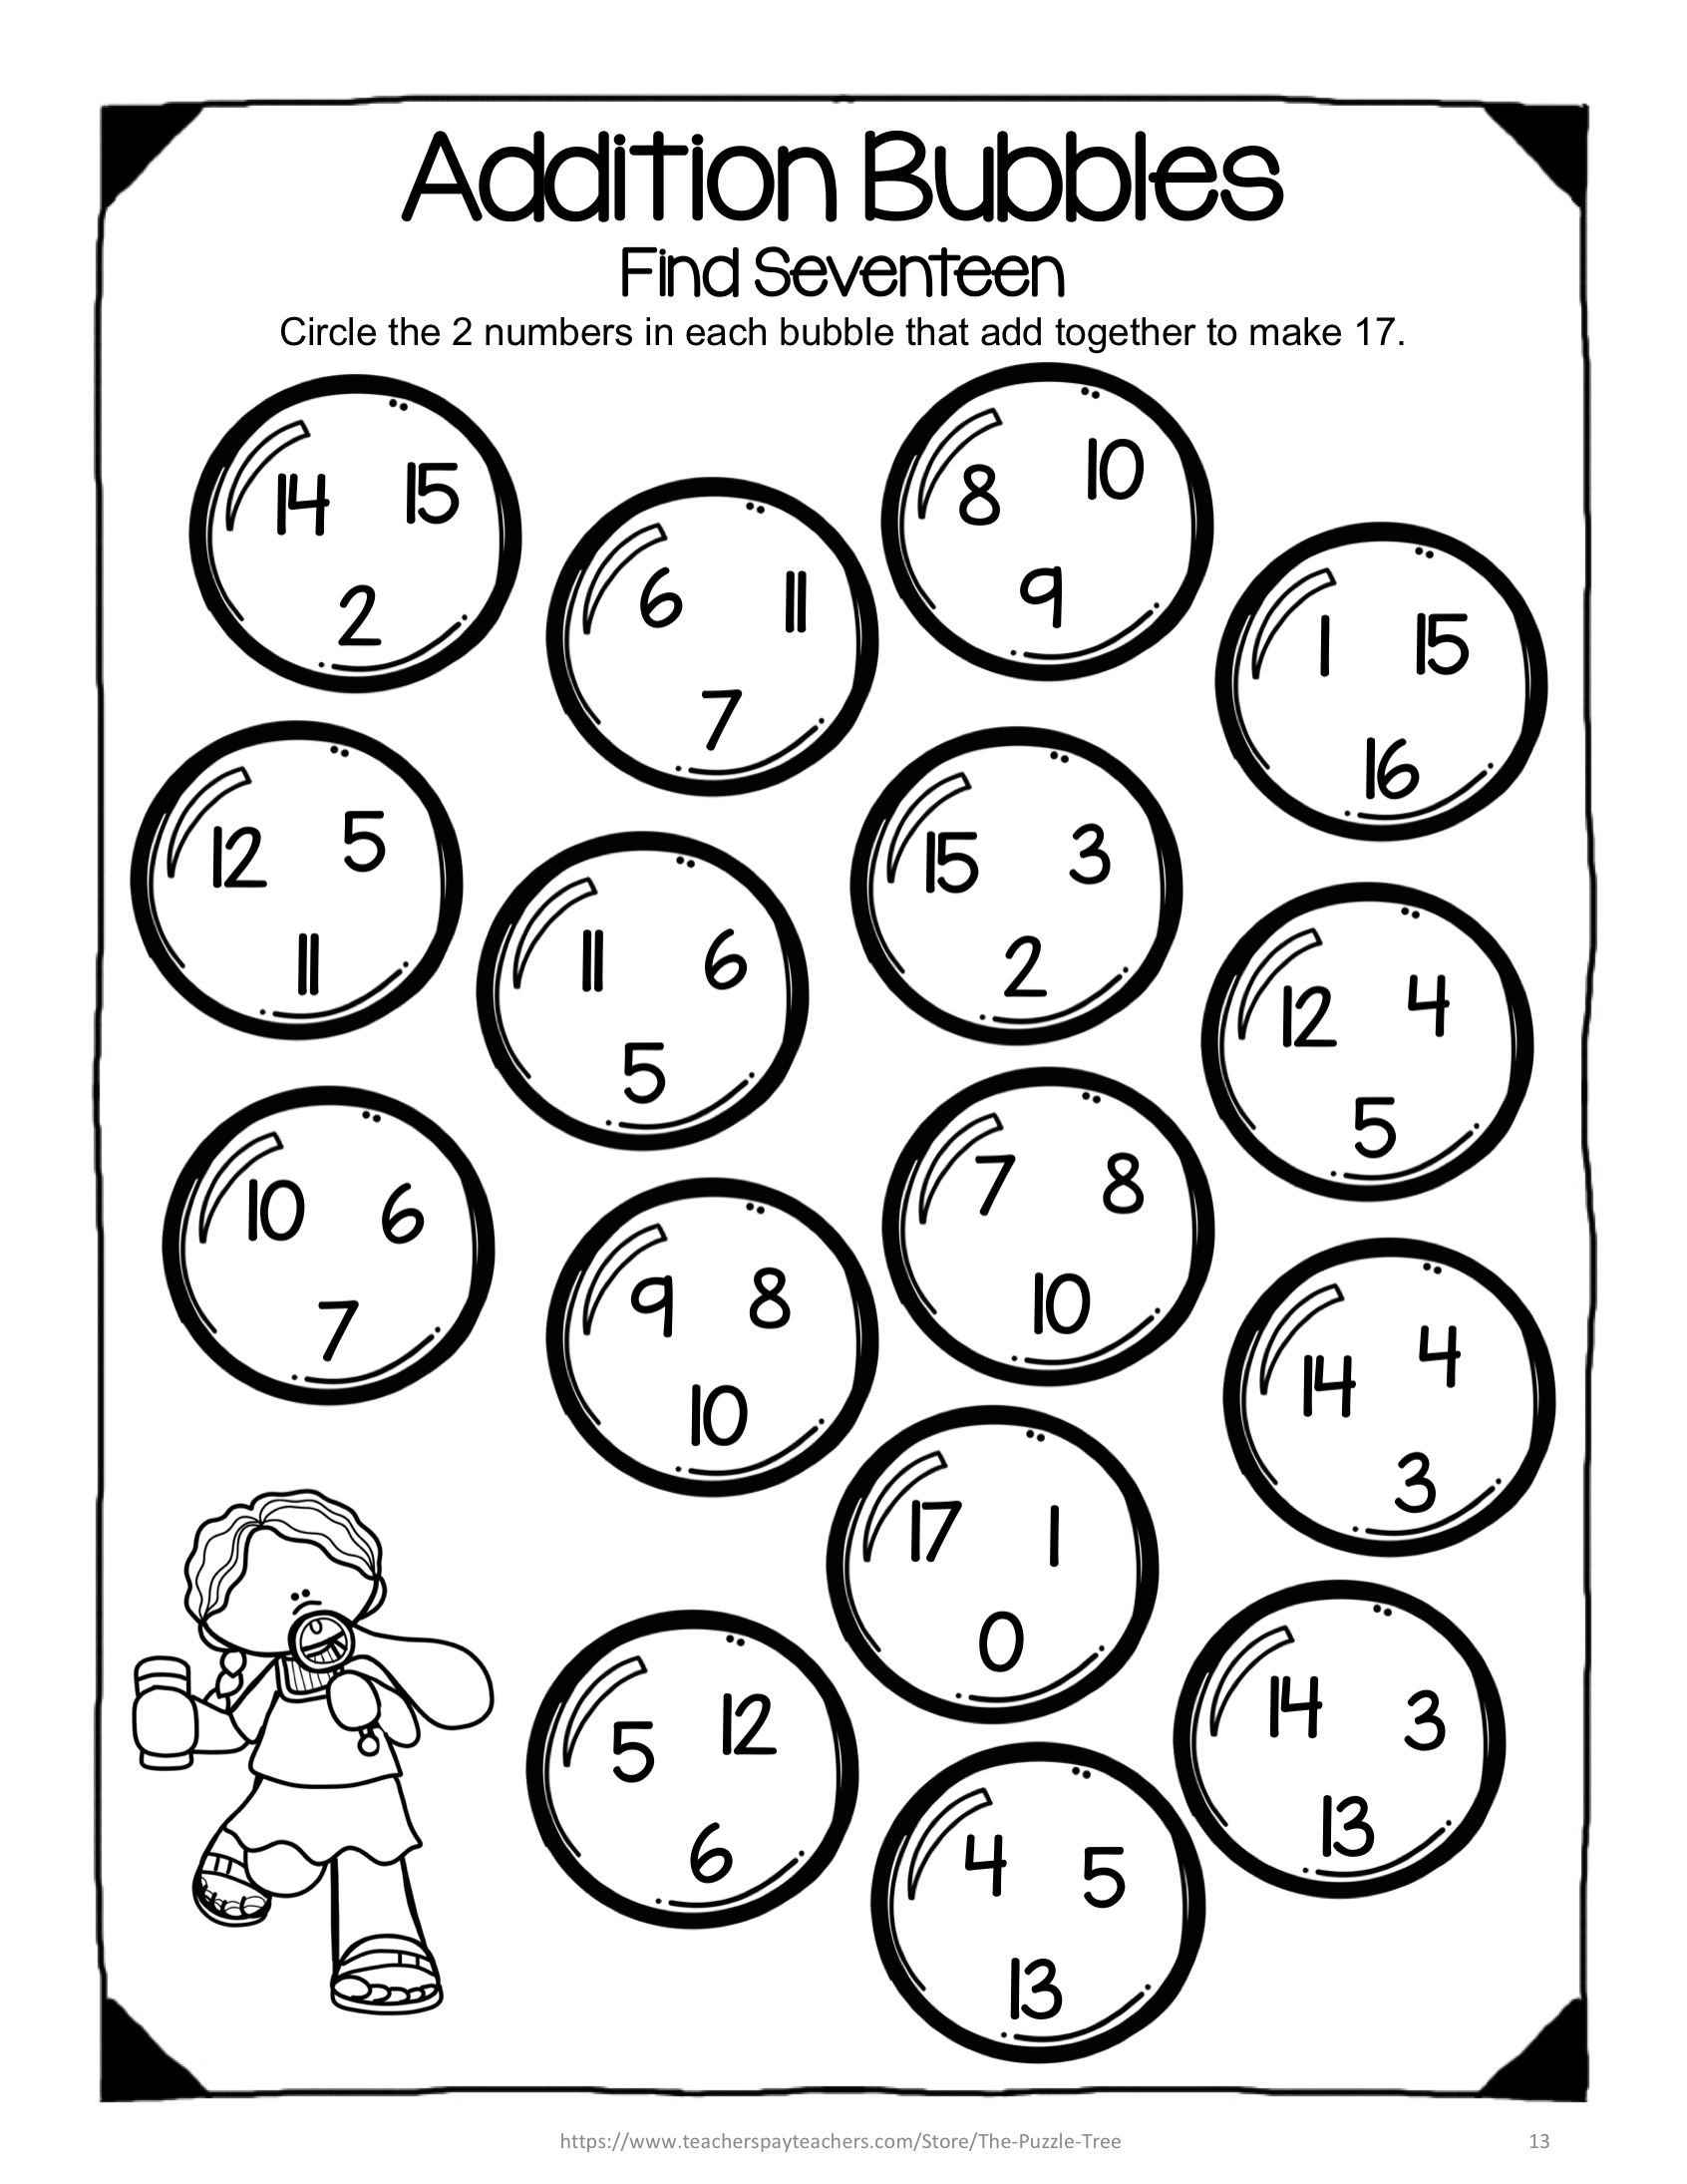 Addition Activity For Second Grade No Prep Addition Worksheets For Addition To 20 A Fun And Easy Way To Addition Worksheets Bubble Activities Addition Facts [ 2190 x 1692 Pixel ]